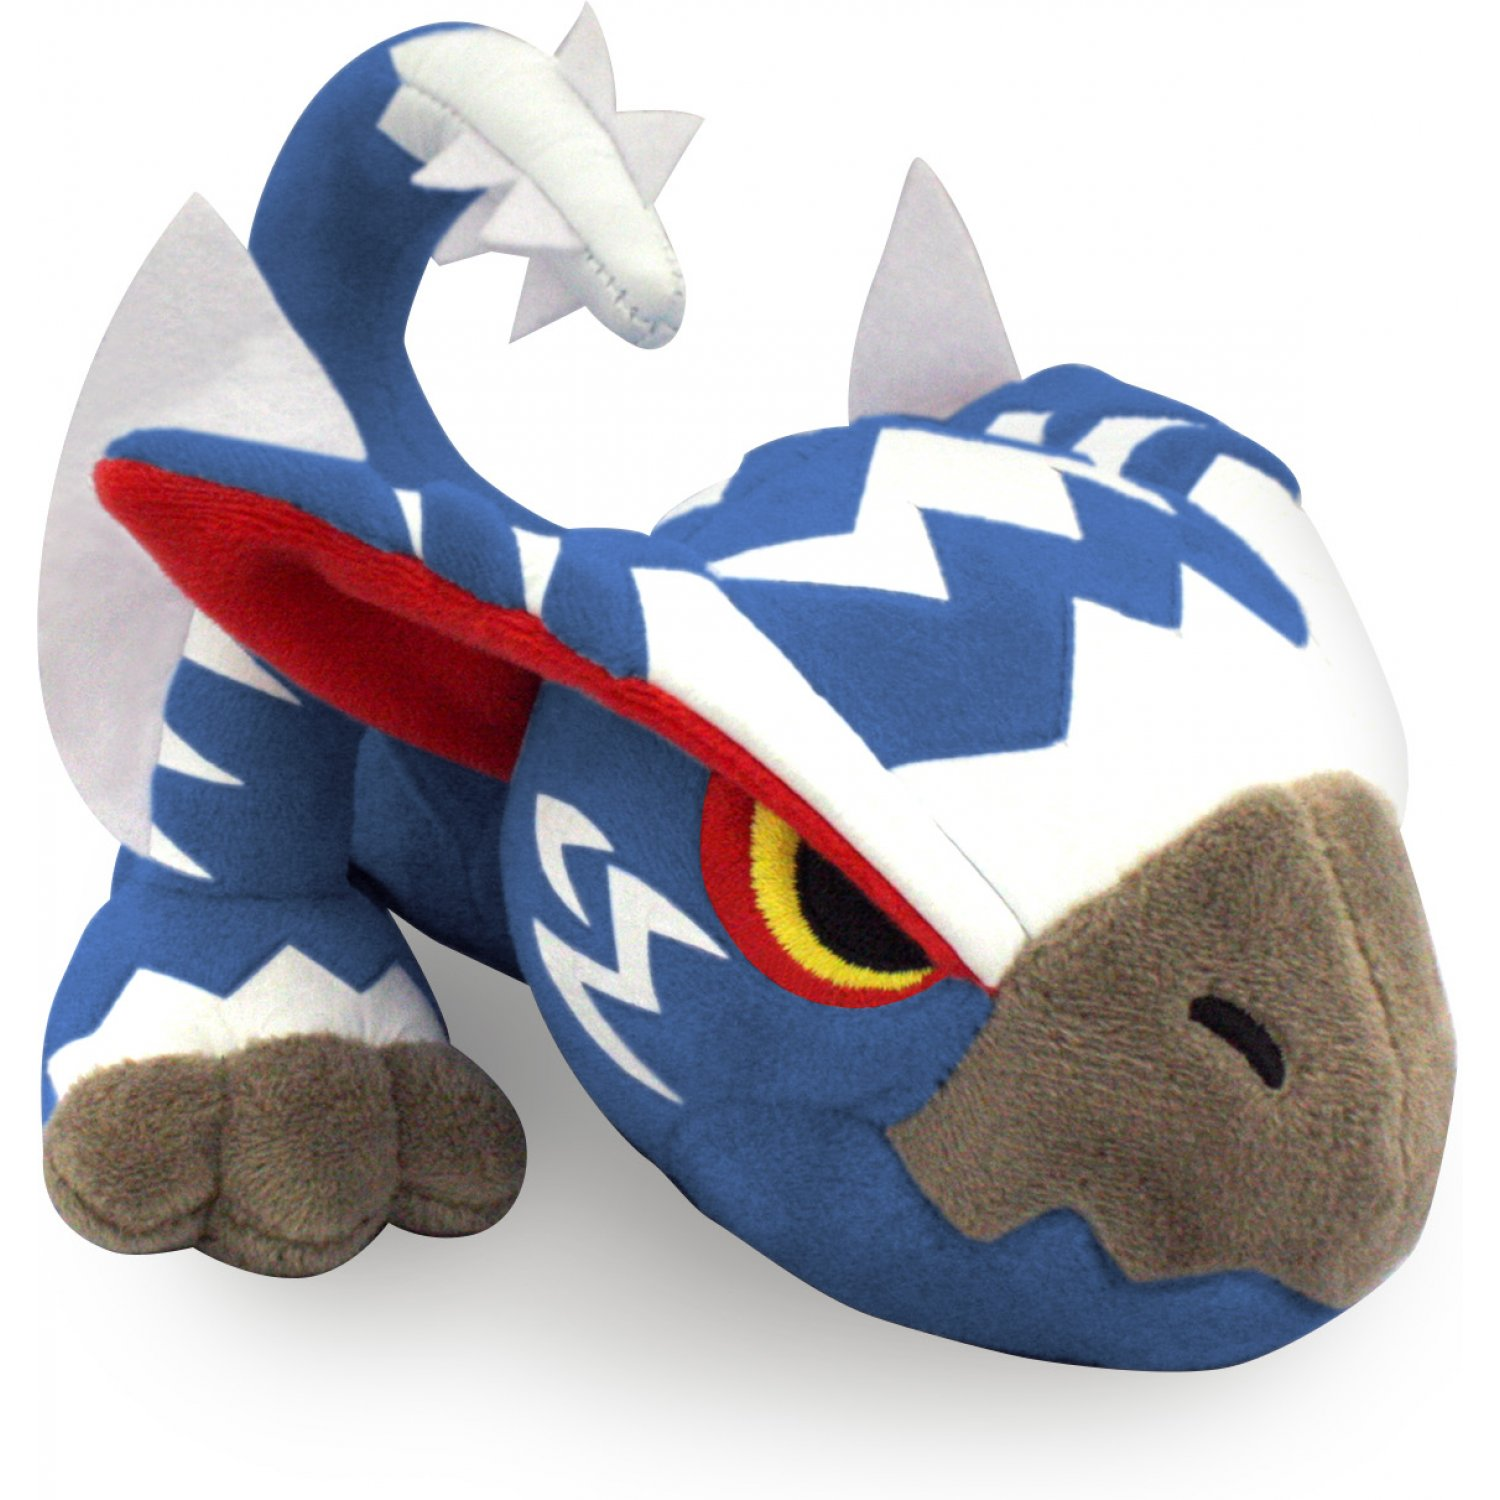 Silverwind Nargacuga - Next, we have a mysterious Silverwind Nargacuga (AKA White Gale Wind Nargacuga) captured from the Jurassic Frontier. Nearly 8 inches long, this ferocious beast is made of the same soft fabric as Yian Garuga. Its wings and tail spikes are made of felt, and its eyes are embroidered with a delightfully grumpy expression. The bright stripes are painted onto the fabric with a thick material that will not crack easily and resembles the texture of pleather. All in all, it would be worth risking the Bleeding Ailment to snuggle this sweetie.